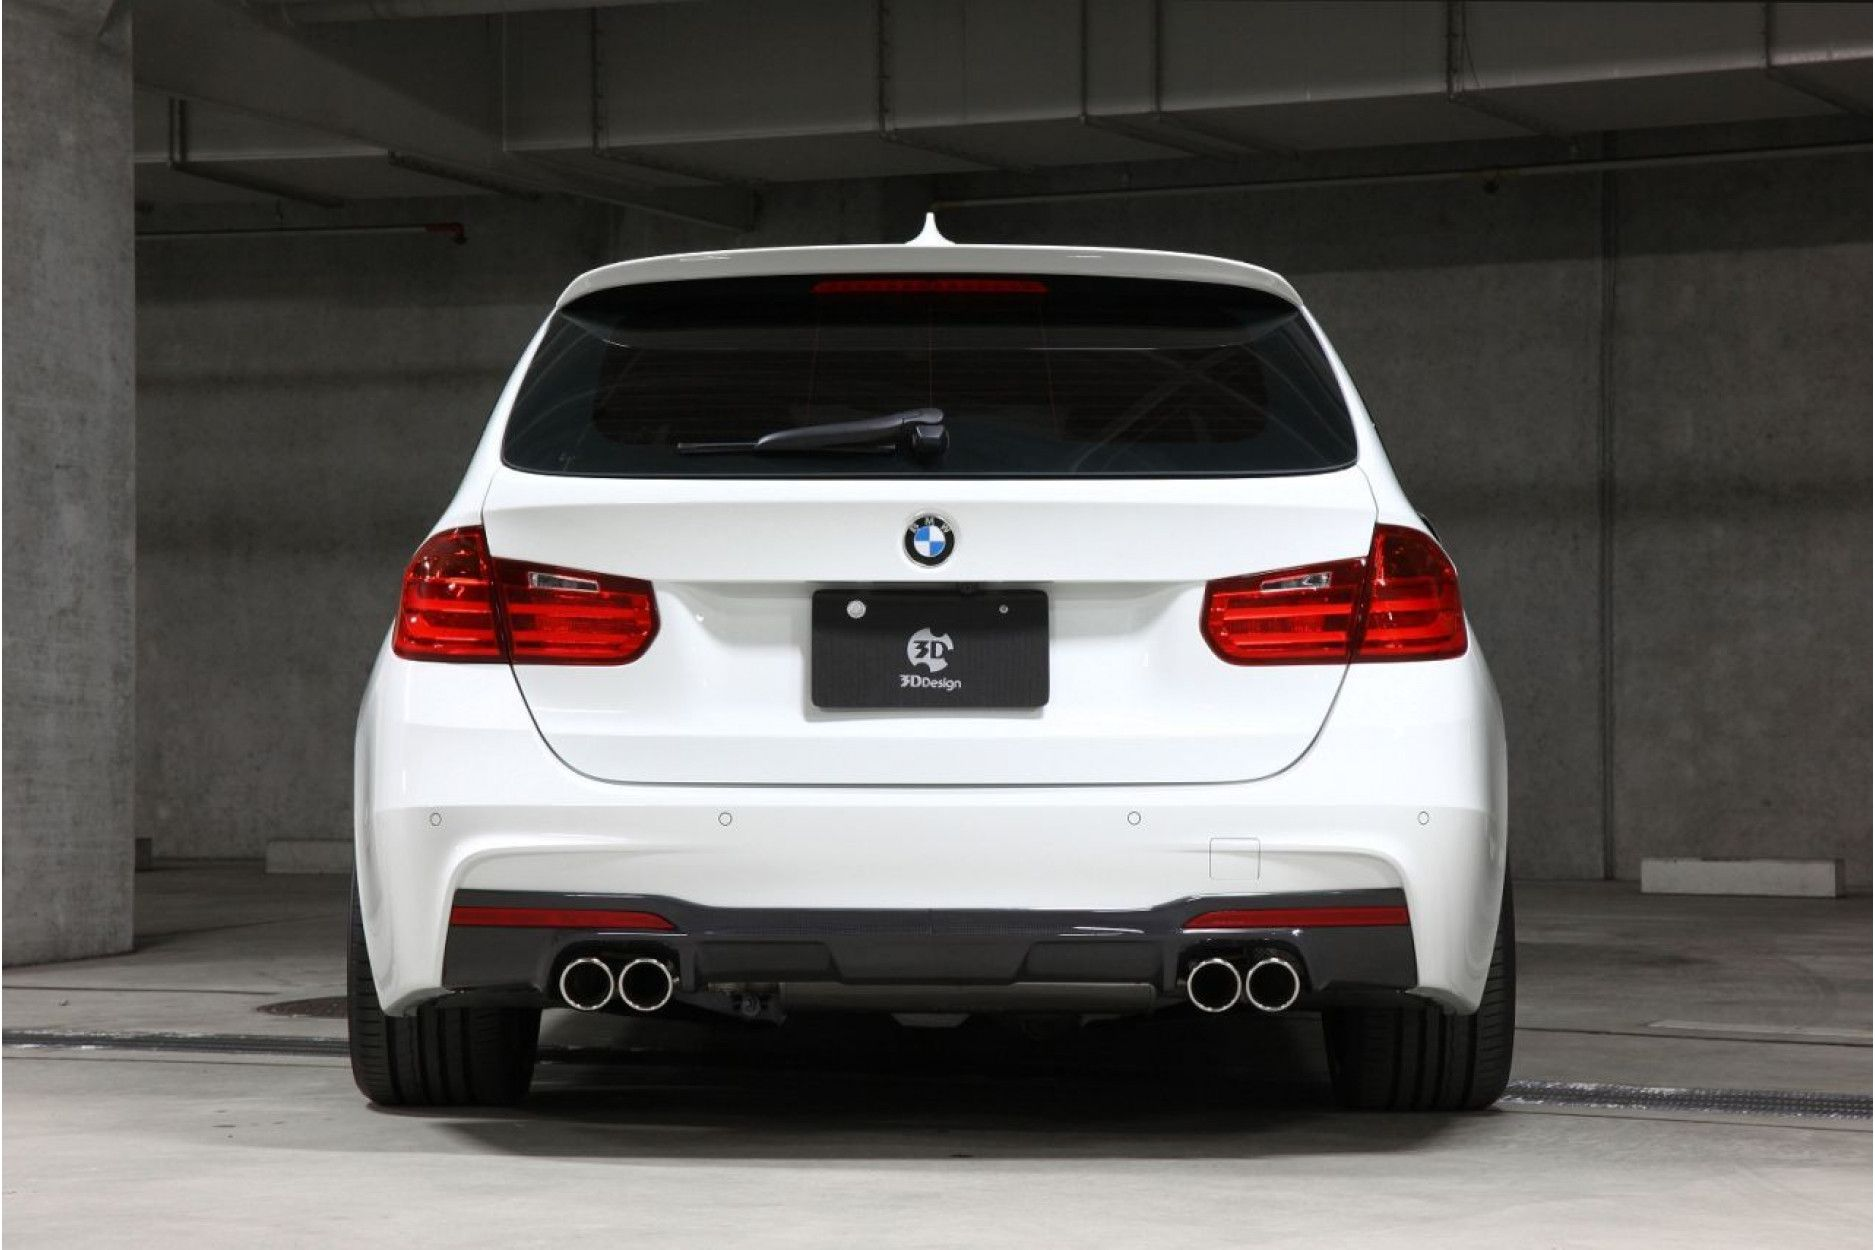 3ddesign Carbon Diffuser For Bmw 3 Series F30 F31 M Tech For Duplex Aga Buy Online At Cfd